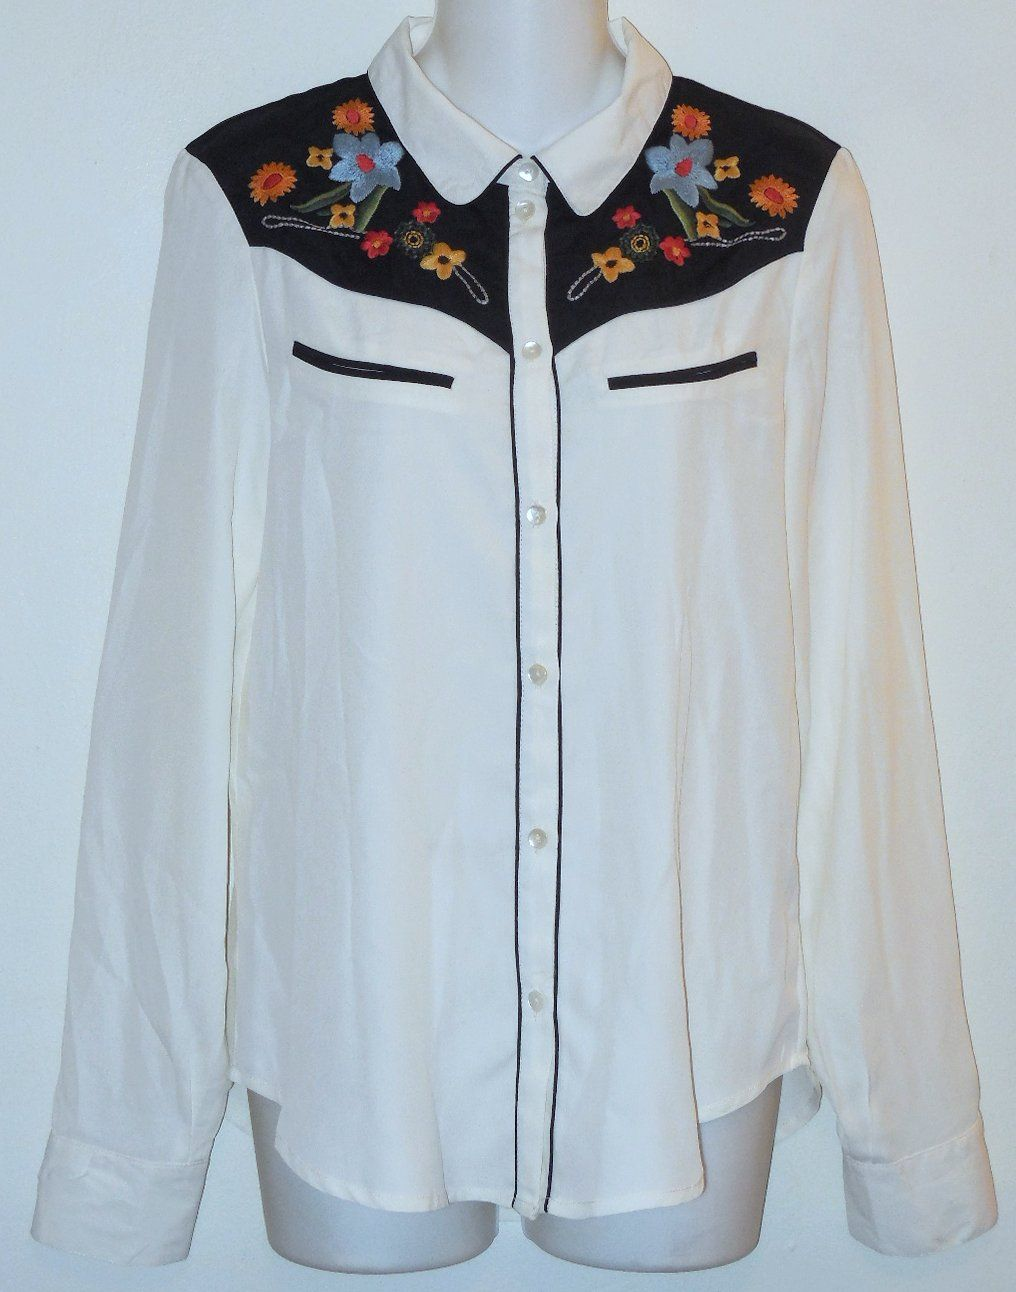 20f216e423b3ab Sanctuary Clothing White Western Button Down Shirt. Free shipping and  guaranteed authenticity on Sanctuary Clothing White Western Button Down  ShirtClassic ...